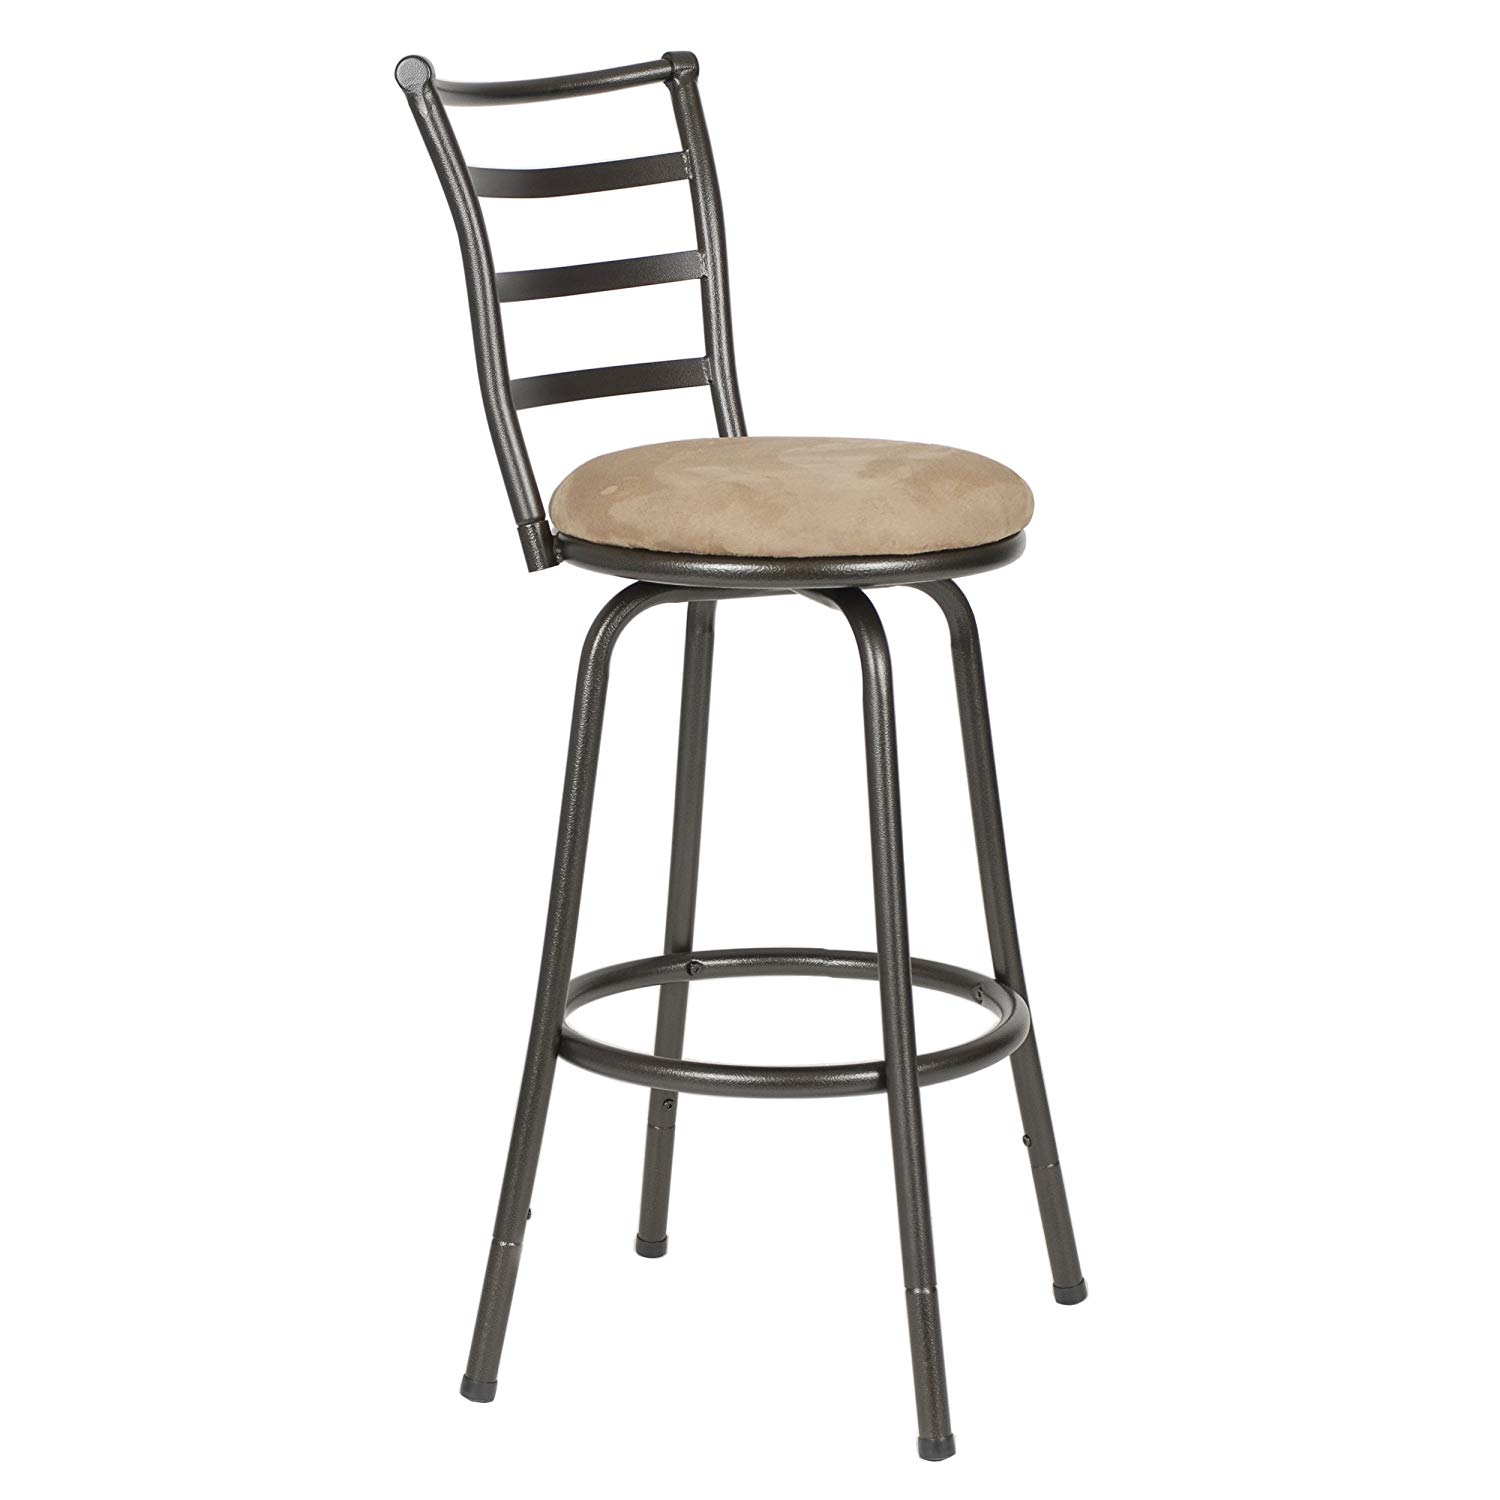 Roundhill Furniture Round Seat Bar Counter Stool